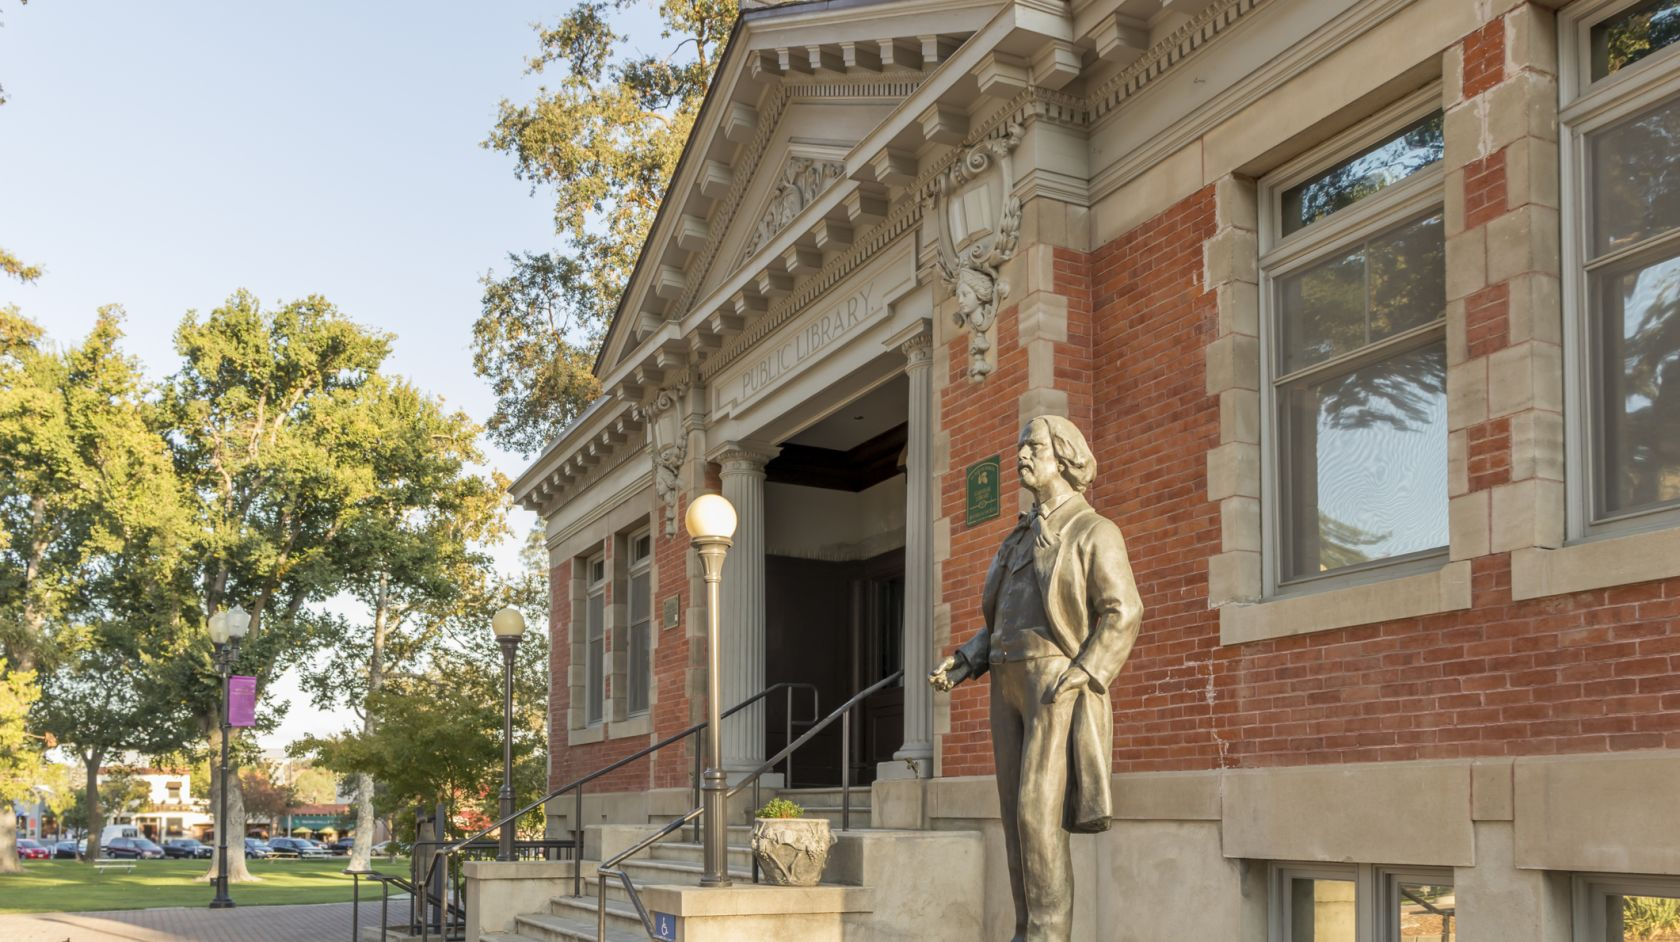 A Statue In Front Of A Brick Building